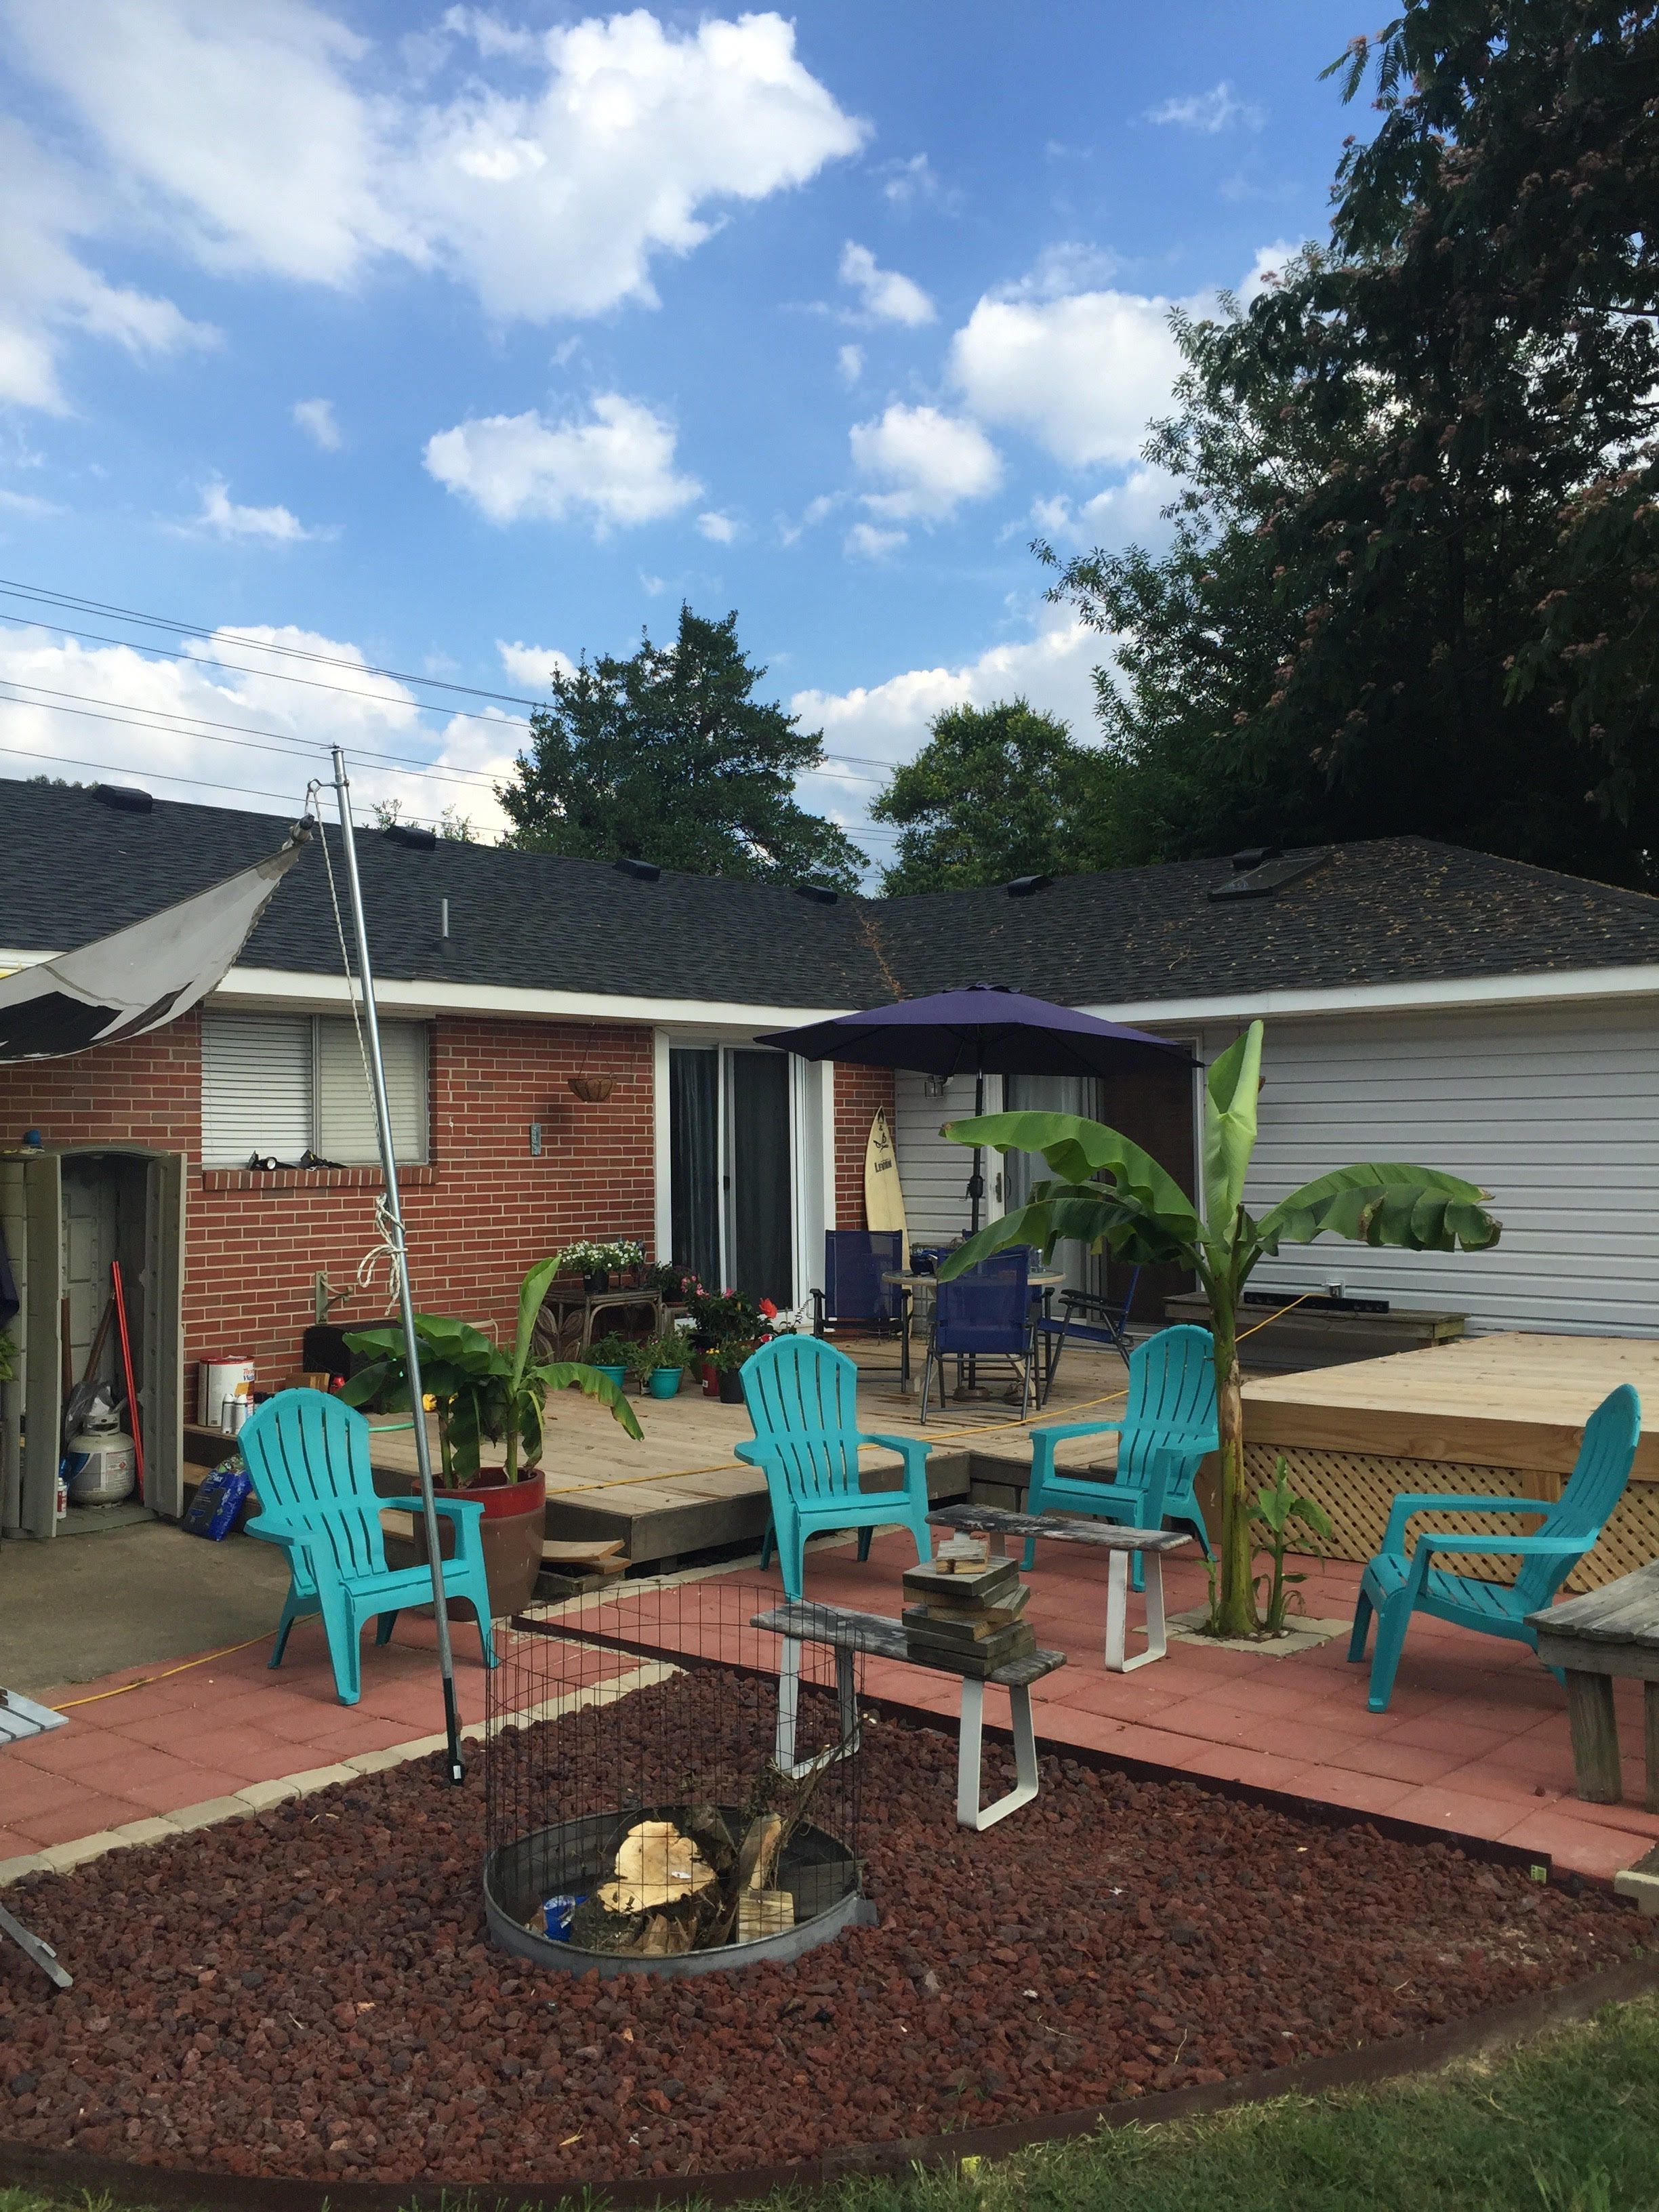 749 N Great Neck Road In Virginia Beach Price Reduced Rare Affordable Opportunity To Move Into This Sought After Area Of